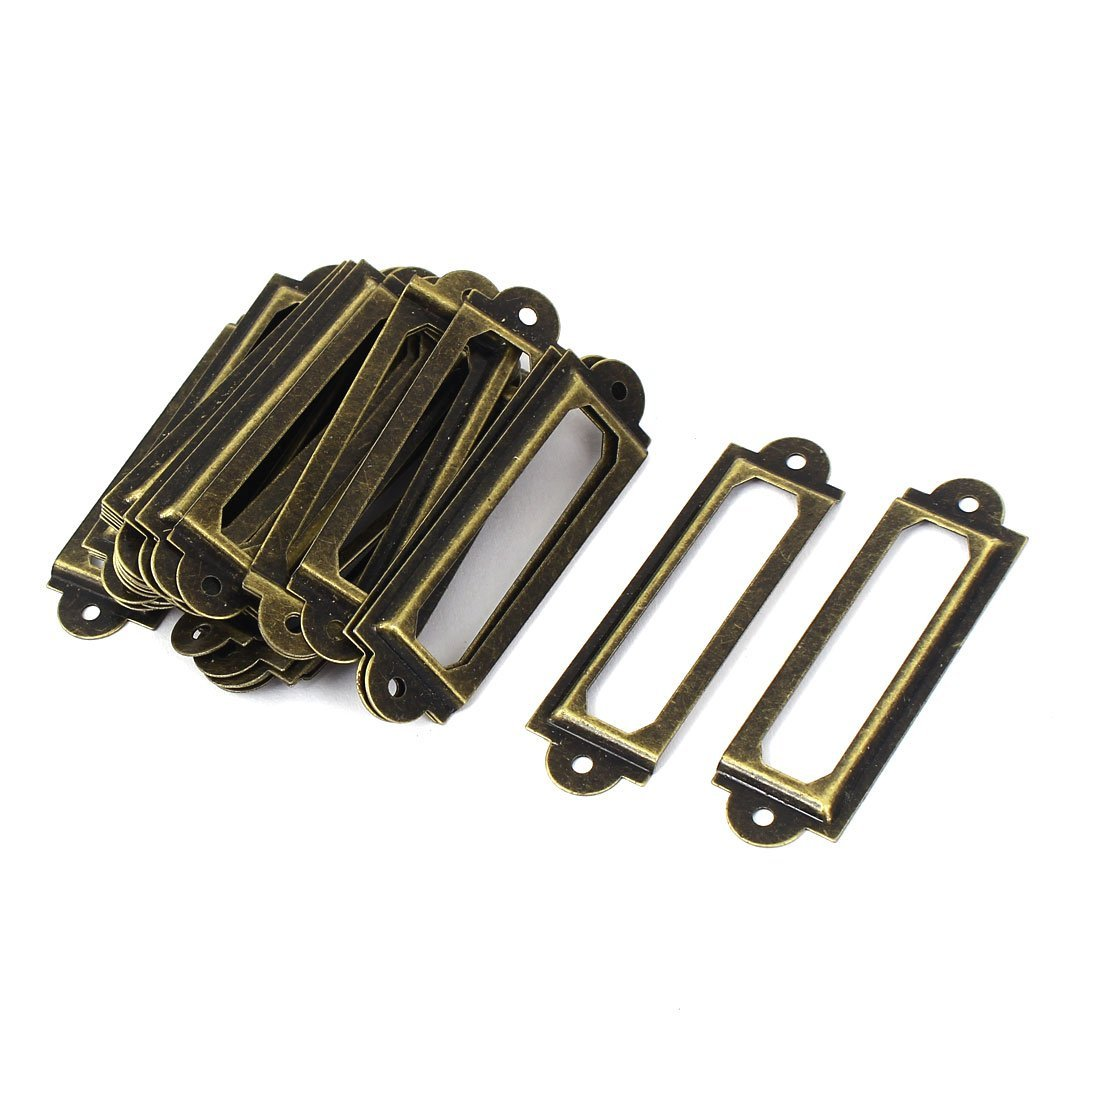 uxcell Shelf Cabinet Drawer 60x17mm Label Frames Tag Holder Bronze Tone 30pcs by uxcell